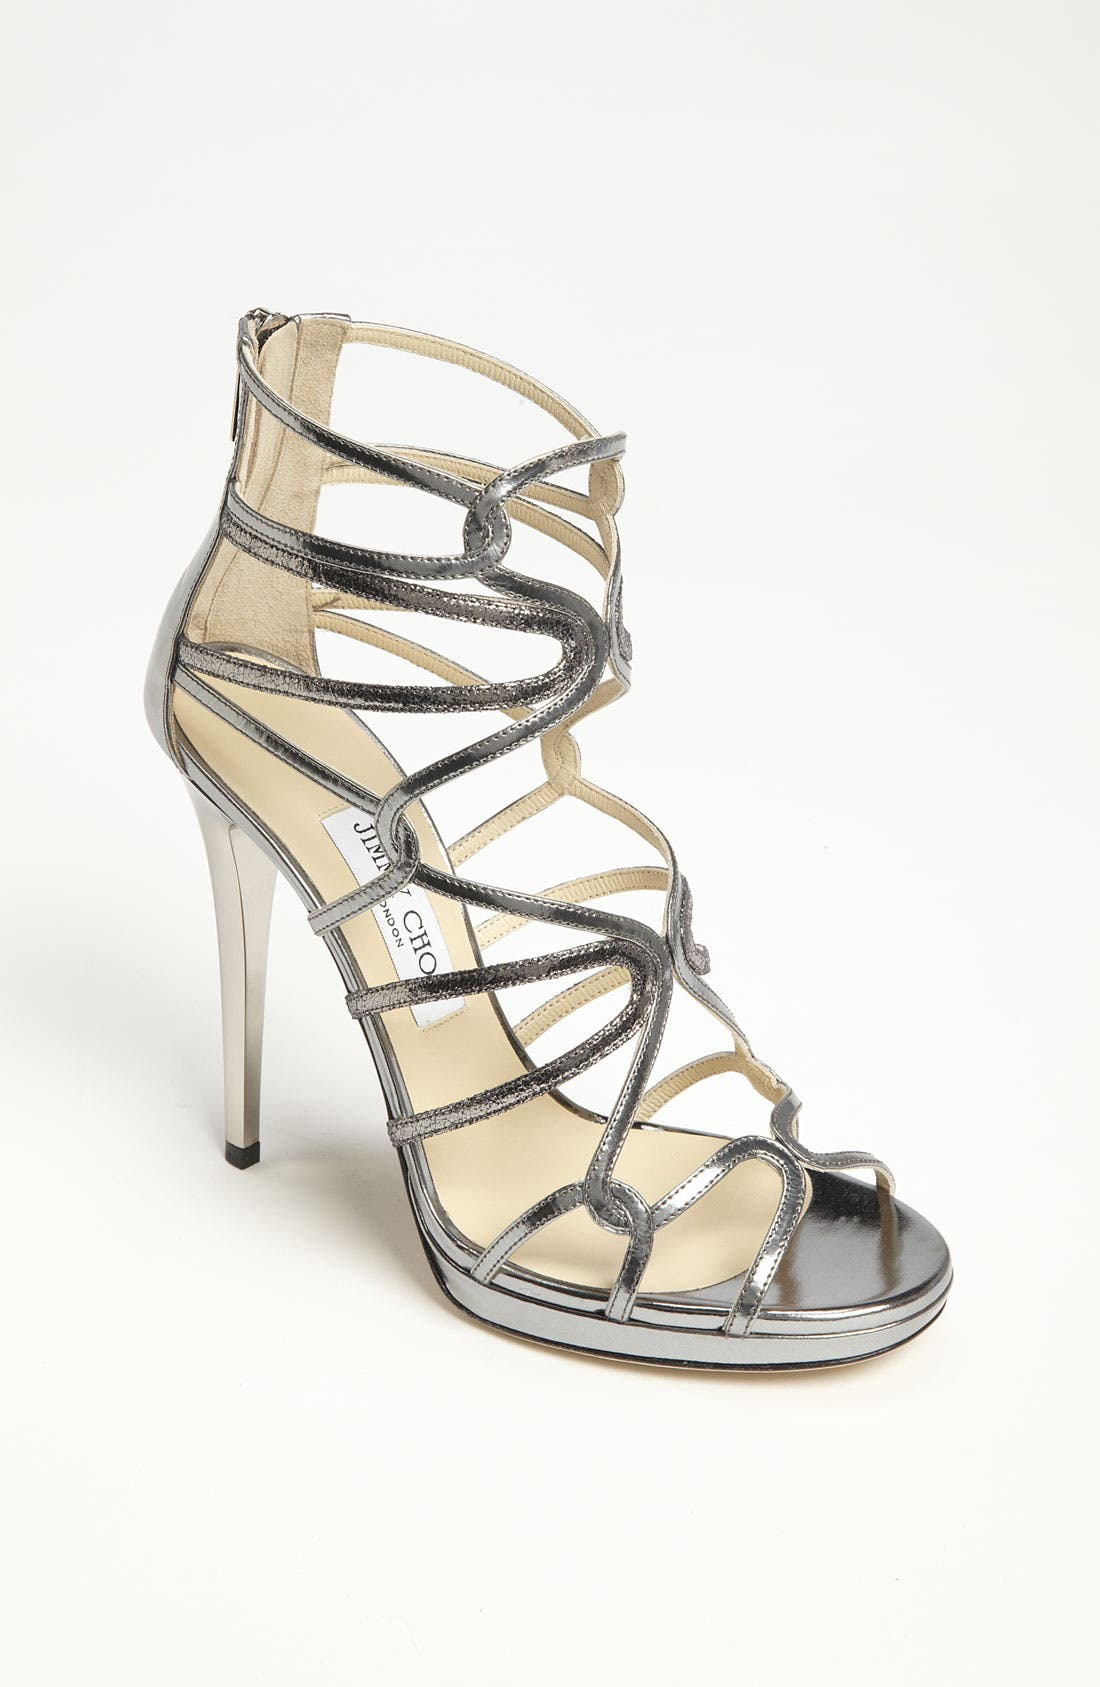 Main Image - Jimmy Choo 'Lake' Strap Sandal